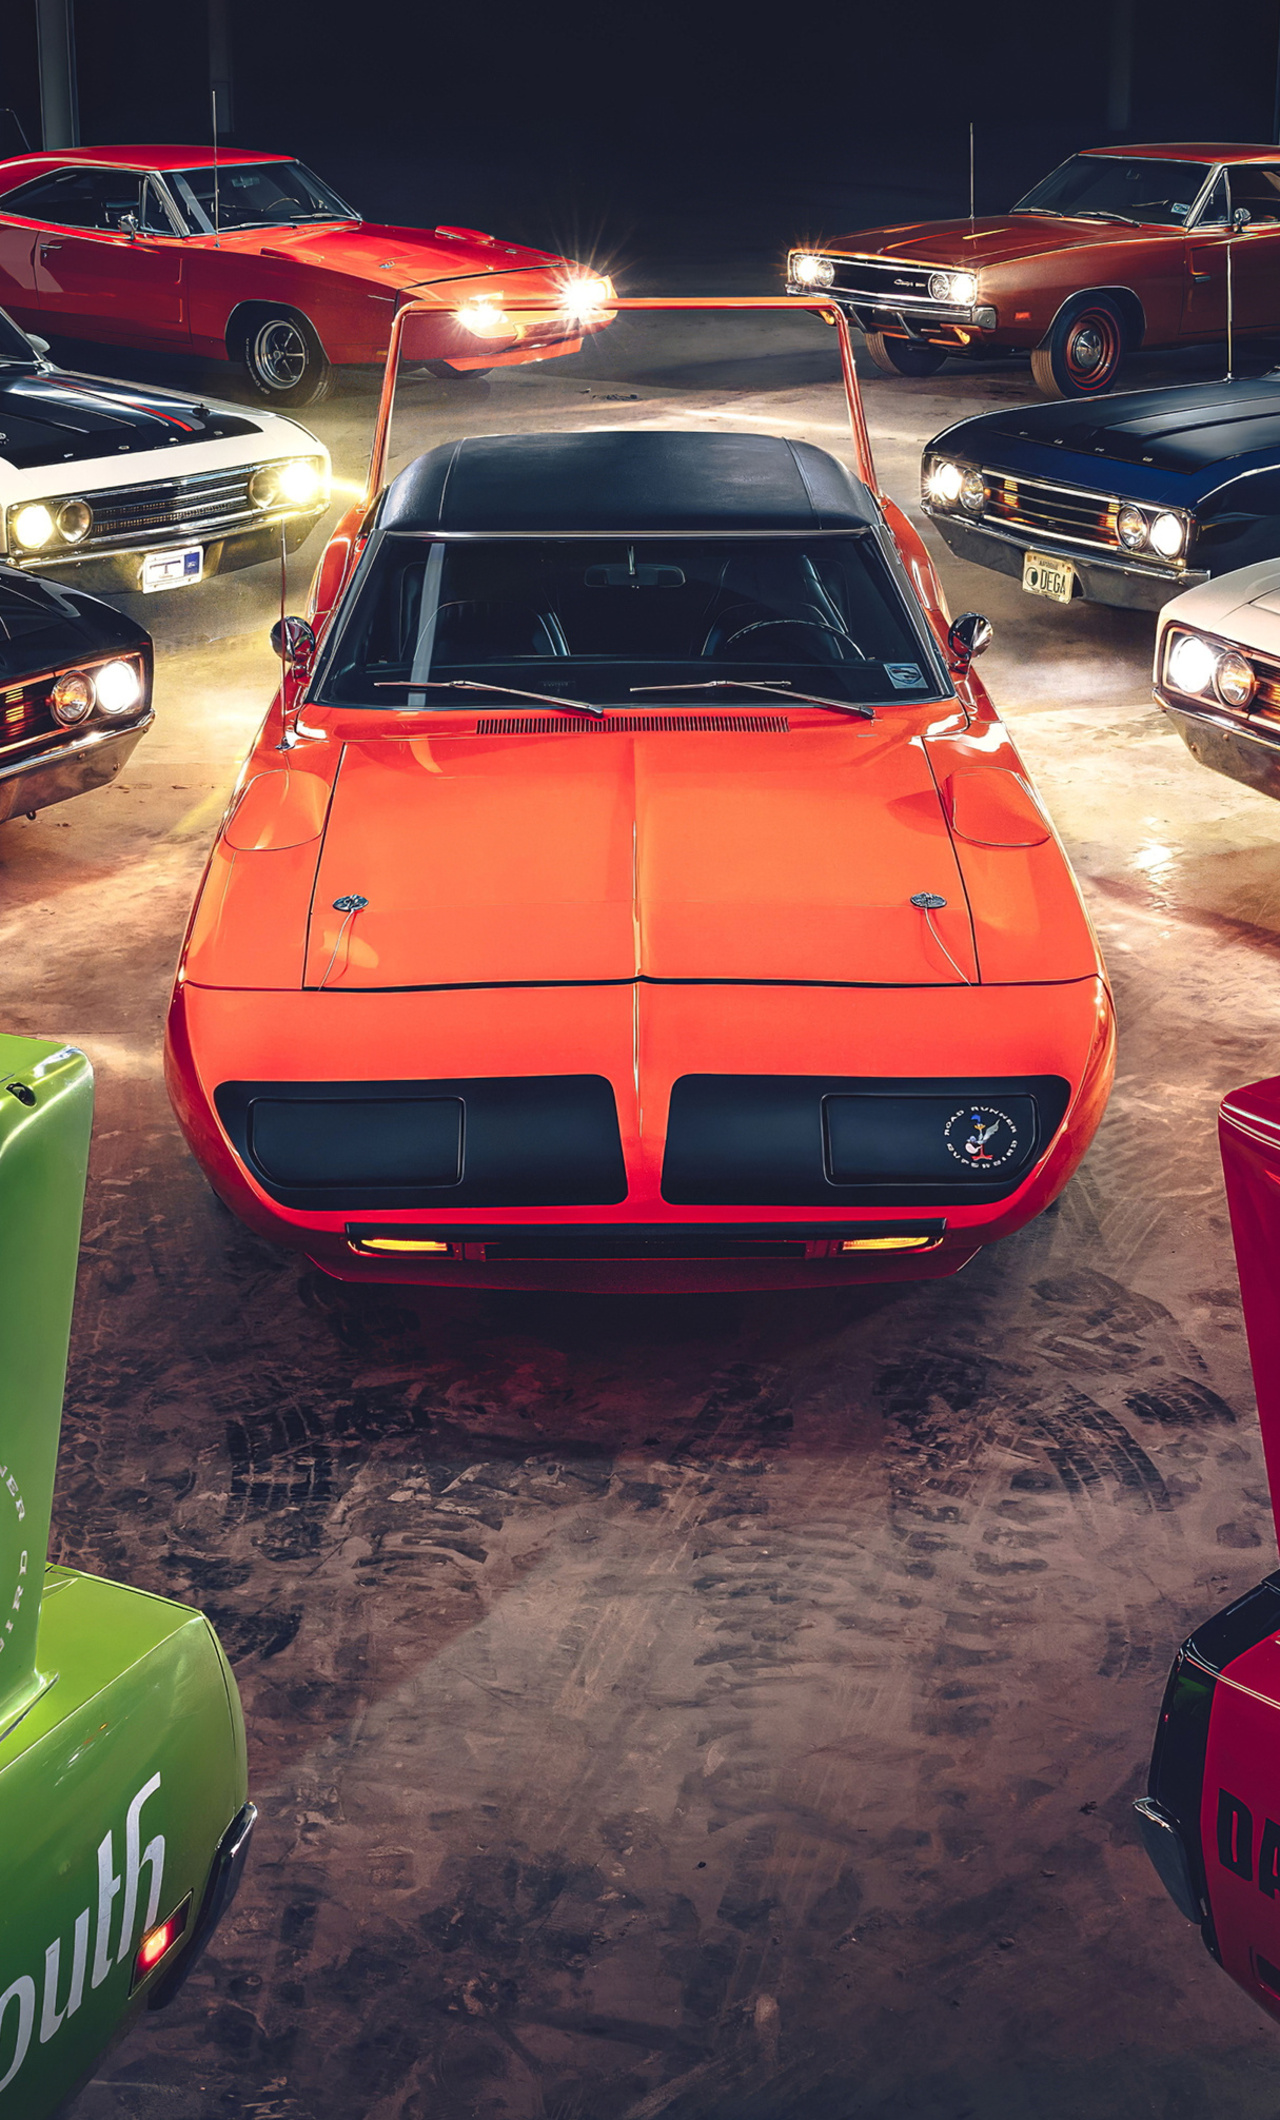 1280x2120 Plymouth Superbird Dodge Charger Daytona 4k Iphone 6 Hd 4k Wallpapers Images Backgrounds Photos And Pictures